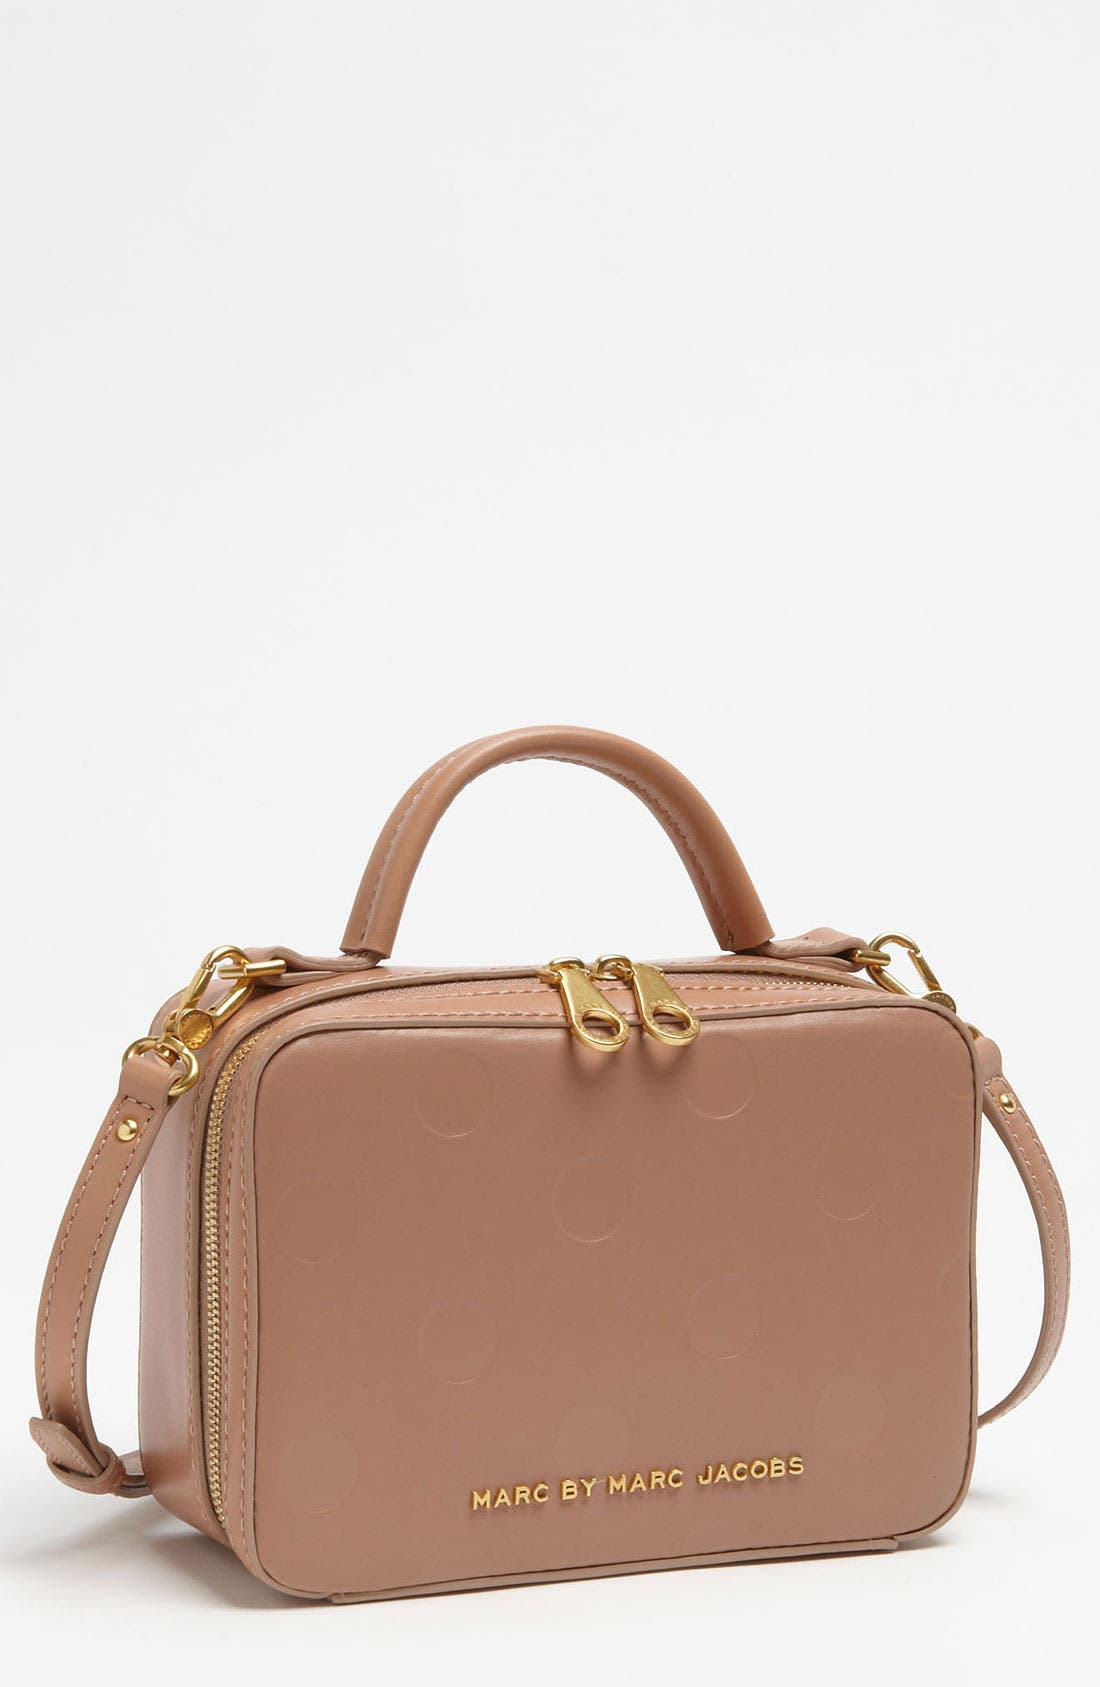 Alternate Image 1 Selected - MARC BY MARC JACOBS 'Party Box' Leather Satchel